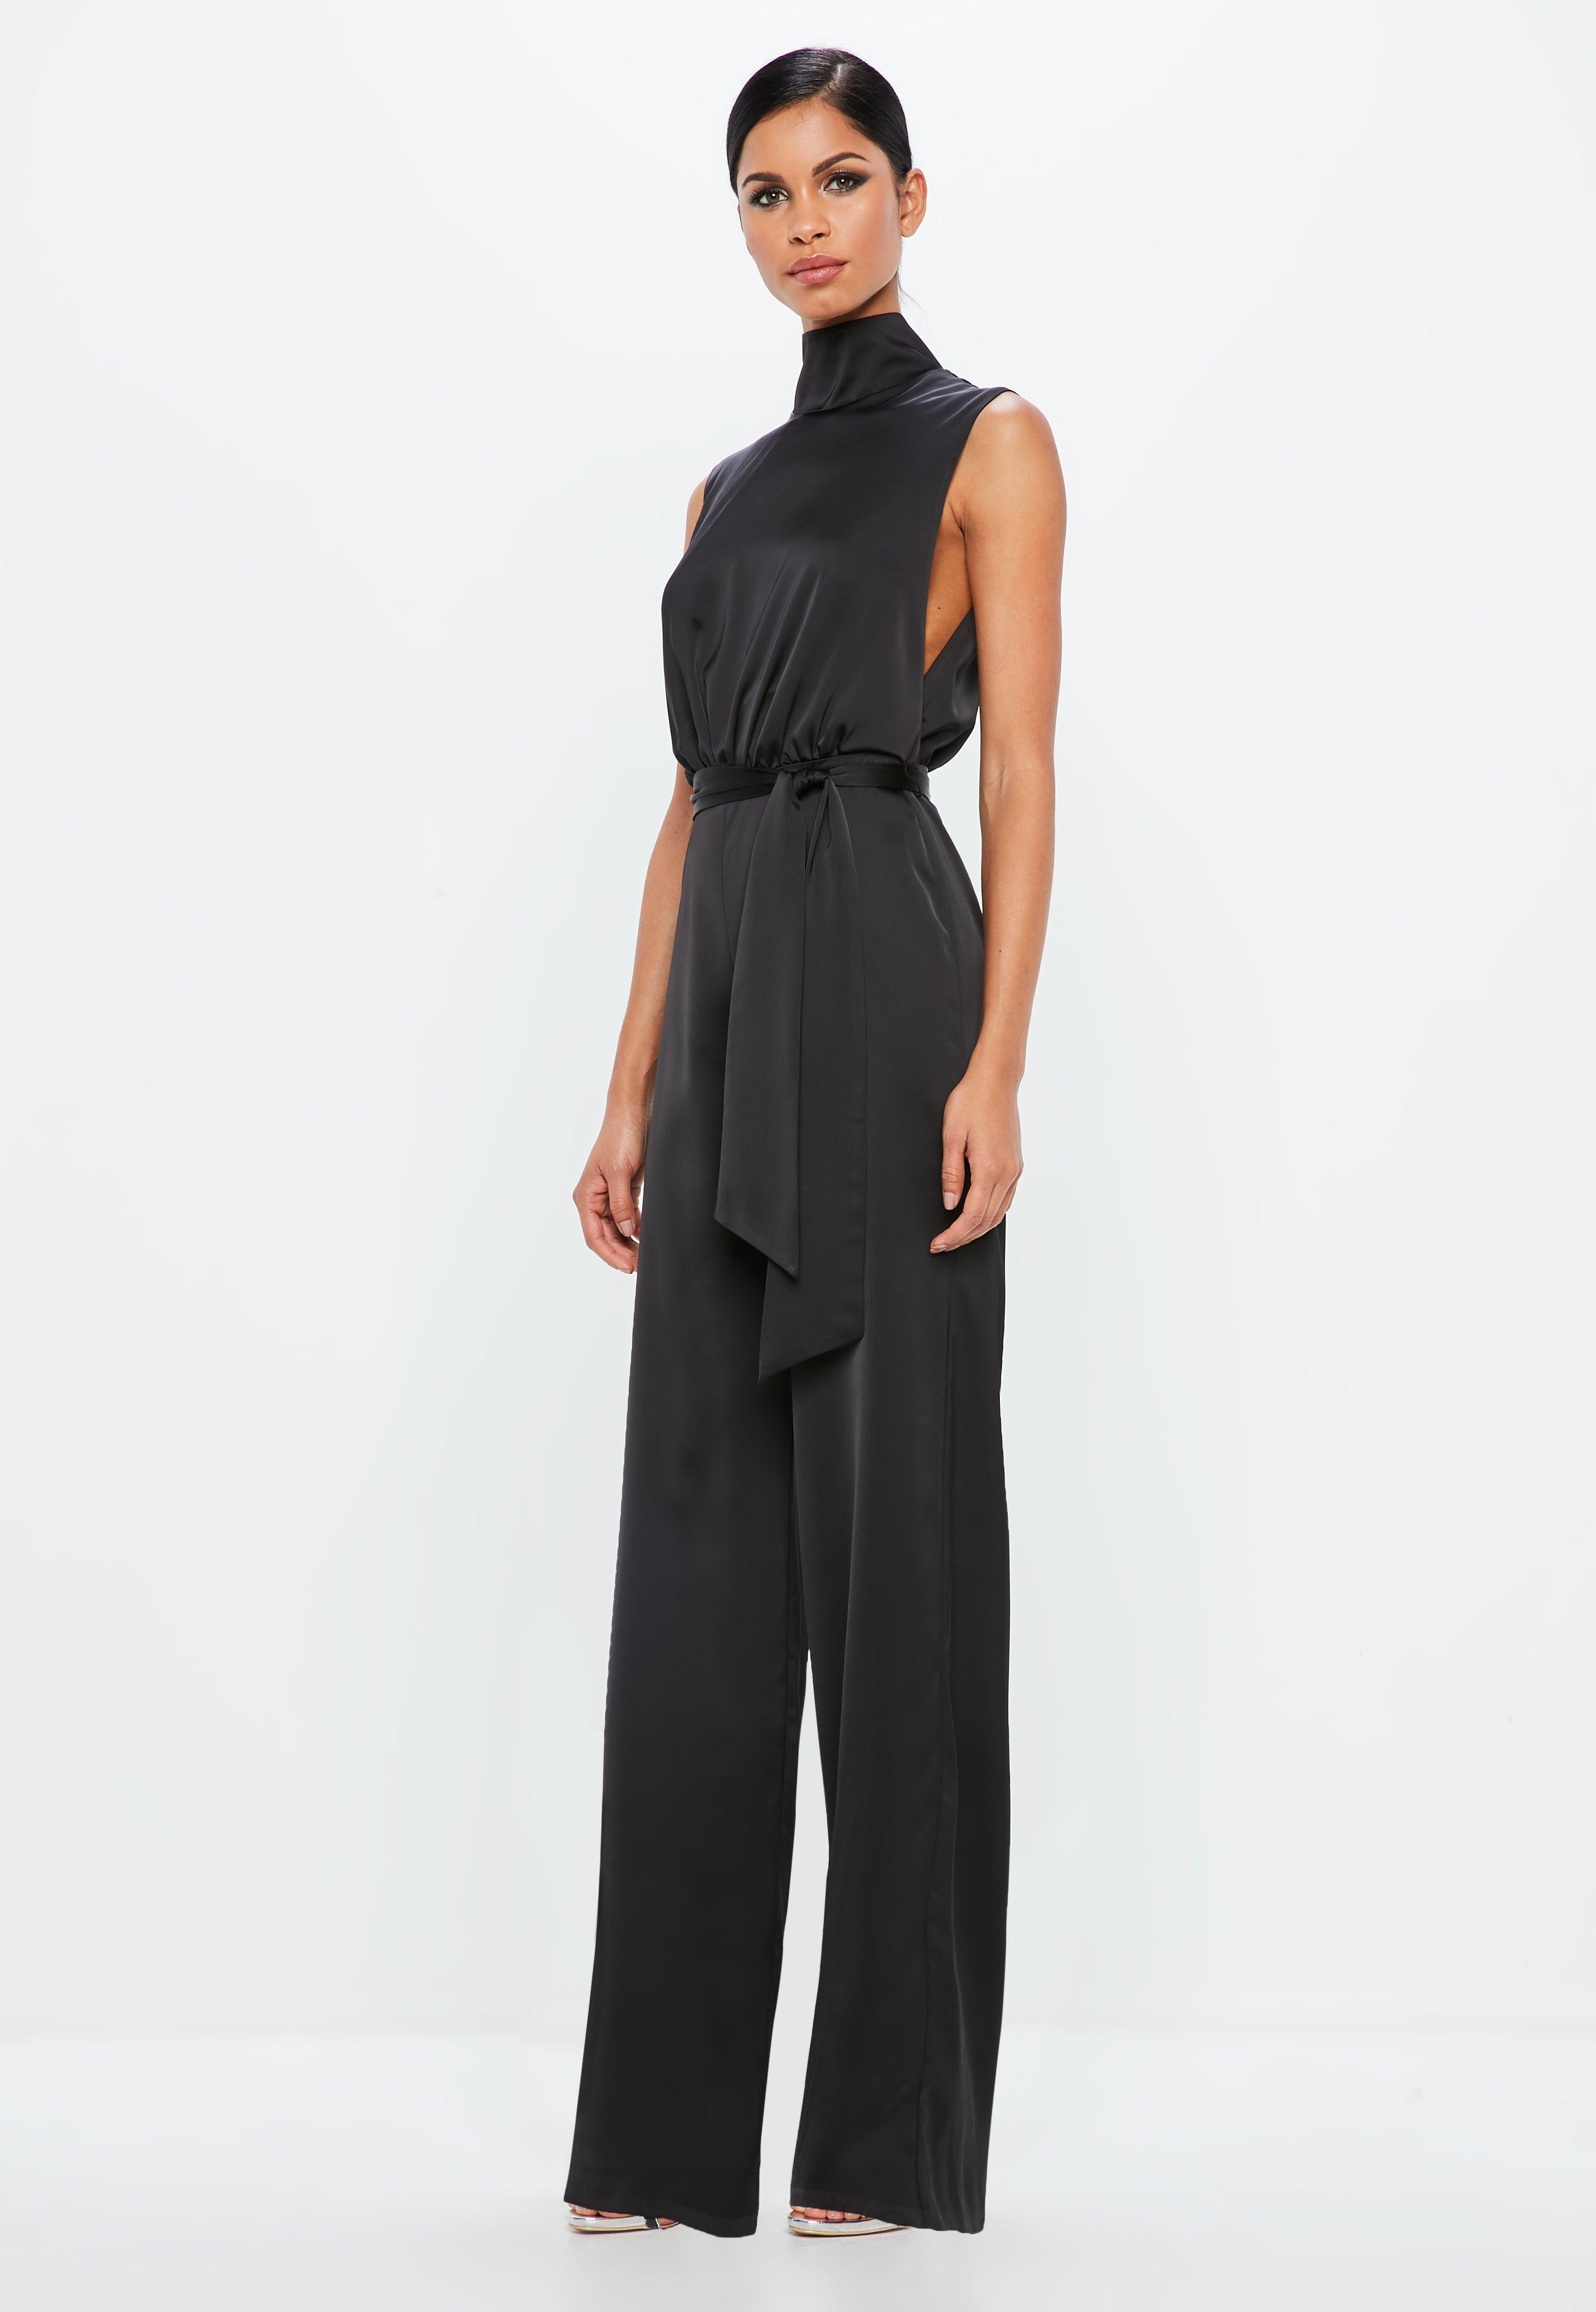 c0d7086a46fe11 Lyst - Missguided Peace + Love Black Satin High Neck Belted Jumpsuit ...